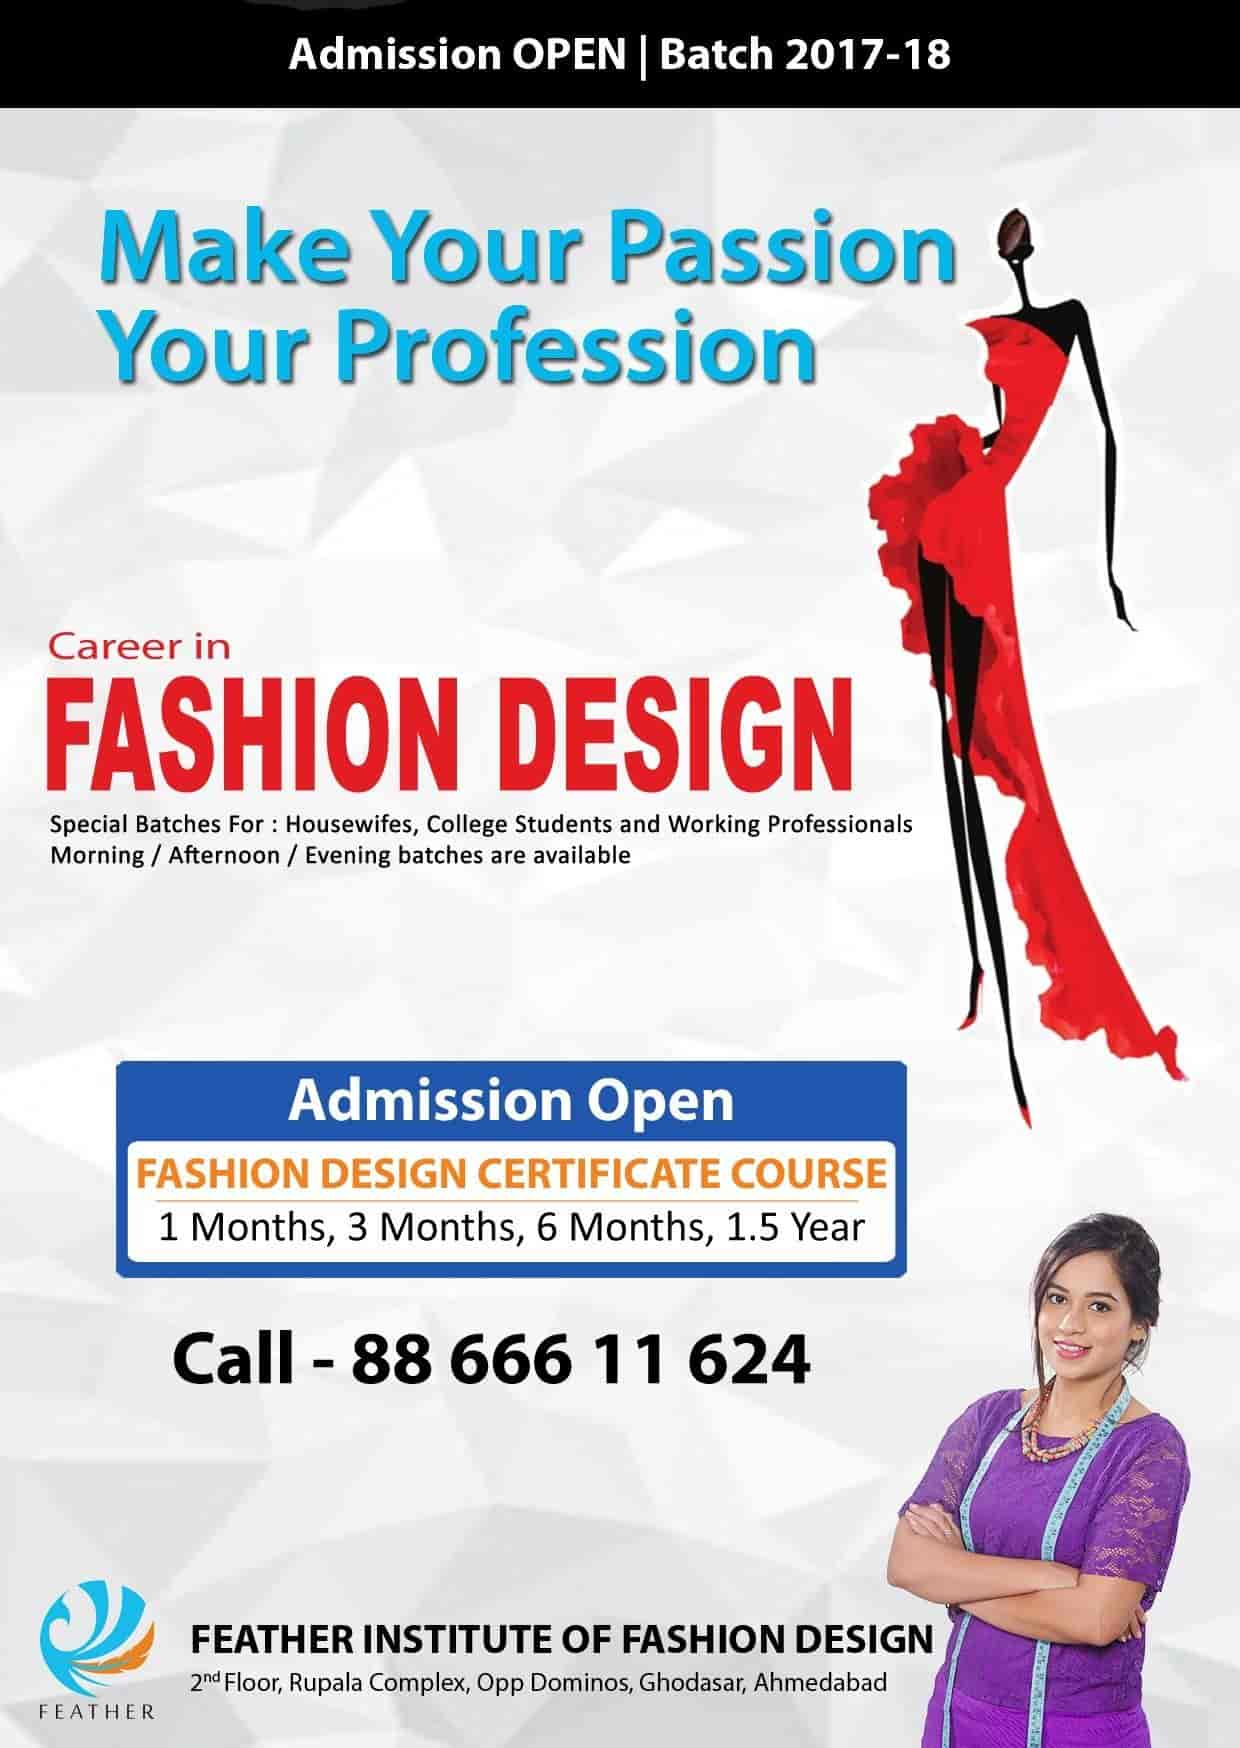 Feather Fashion Design Institute Photos Ghodasar Ahmedabad Pictures Images Gallery Justdial